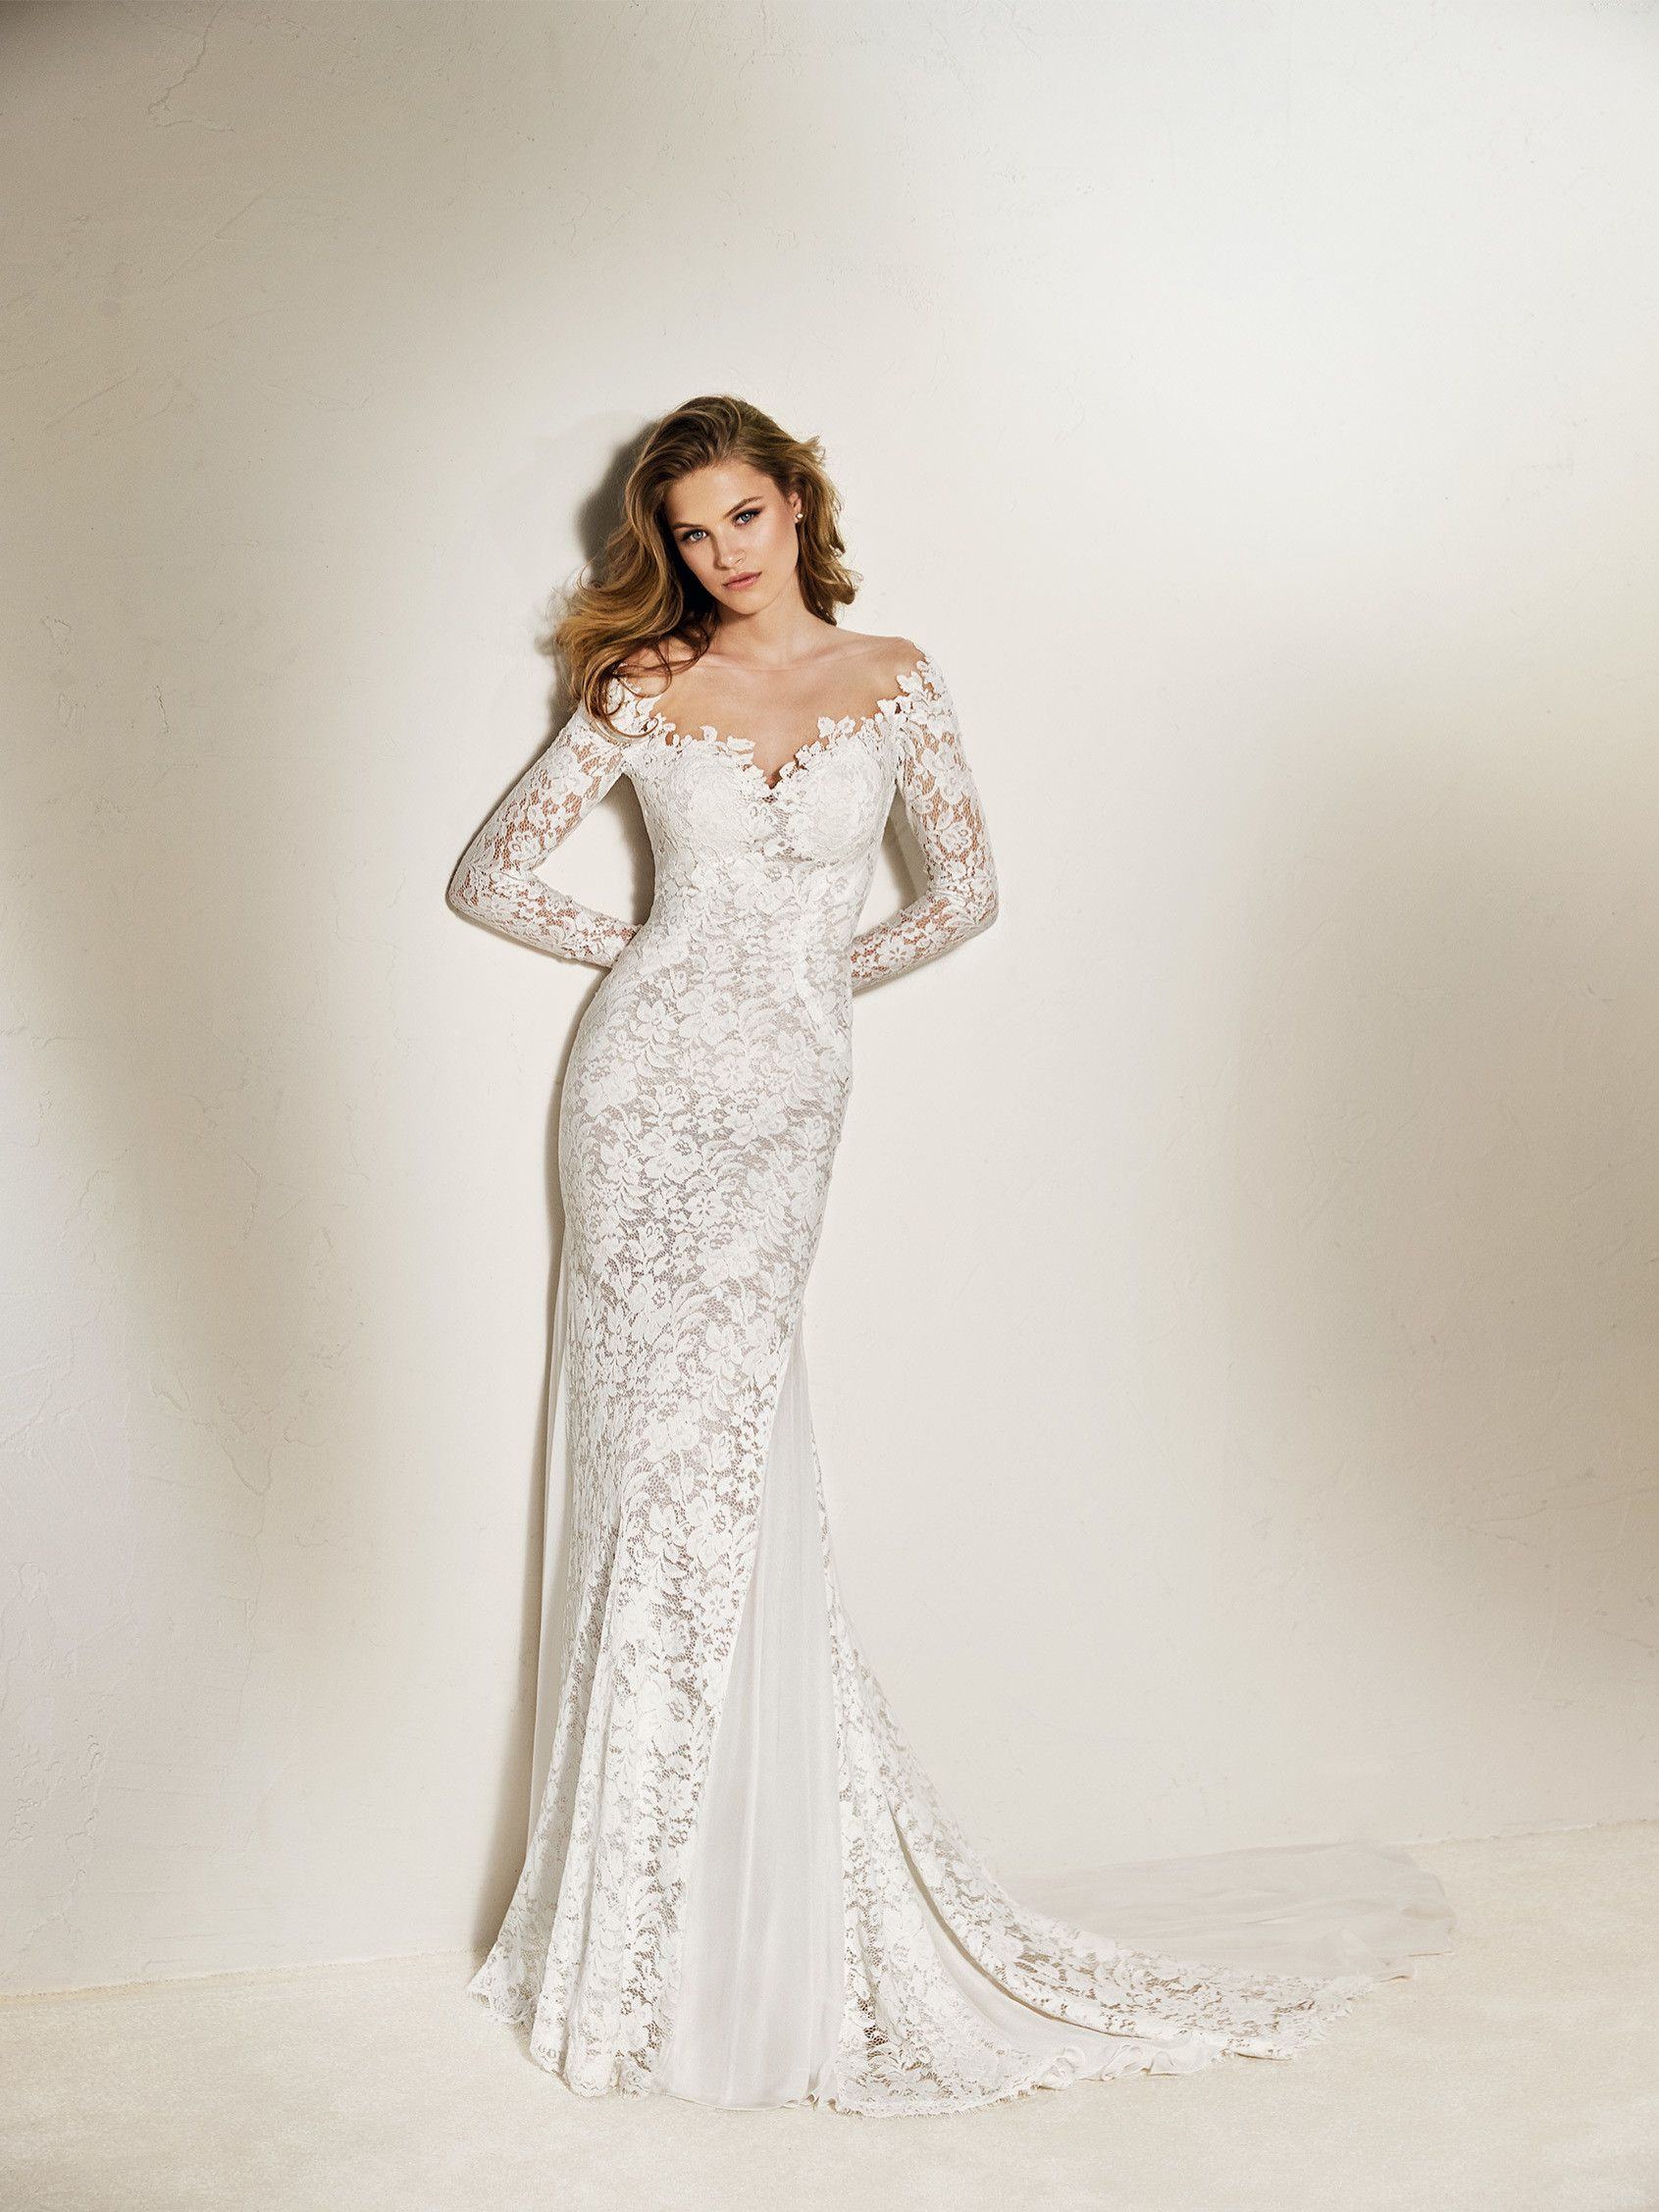 CHANDA  Long-sleeve mermaid wedding dress in lace and tulle with chiffon  panels. The fabric of this design creates a tattoo effect. aff2850d574